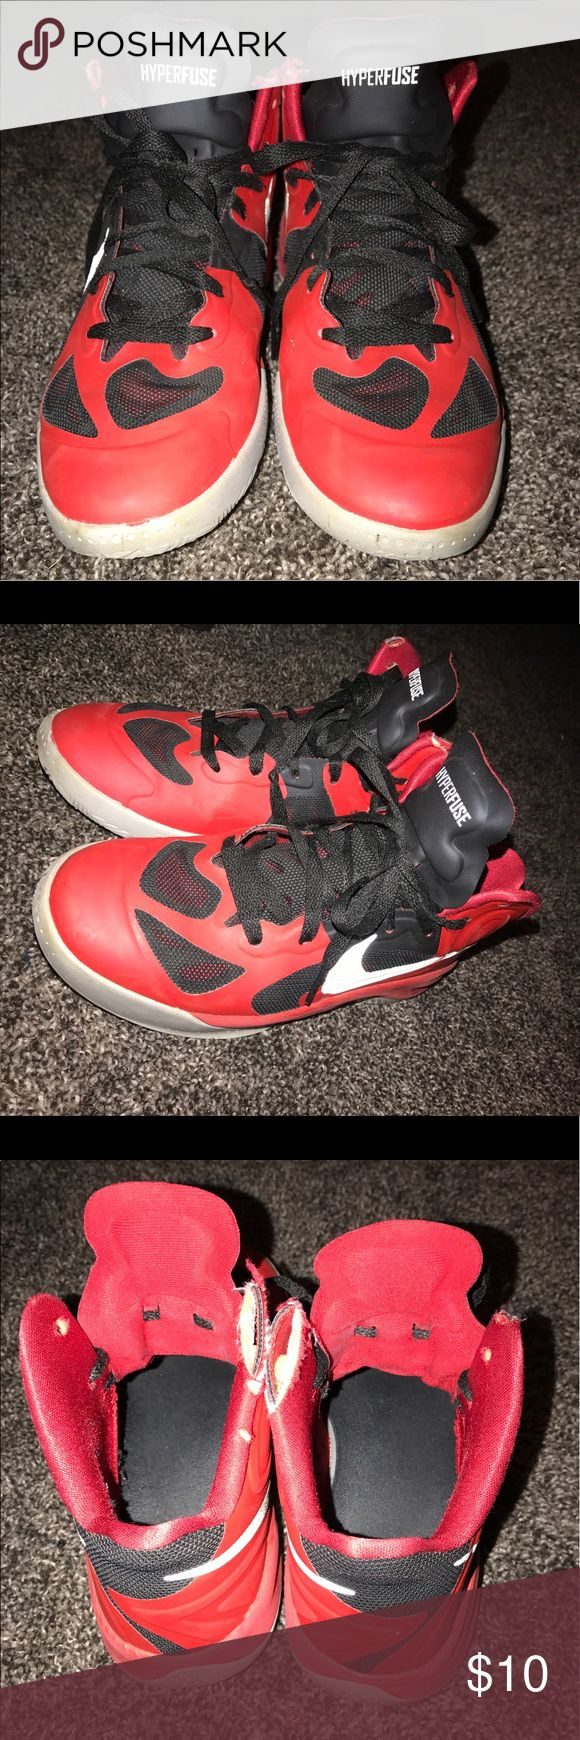 Red Nike Hyperfuse Basketball Shoes used. Red super comfortable and good ankle support shoes . inside ankle support ripped on both insides and a little on pitt side of right shoe Nike Shoes Athletic Shoes